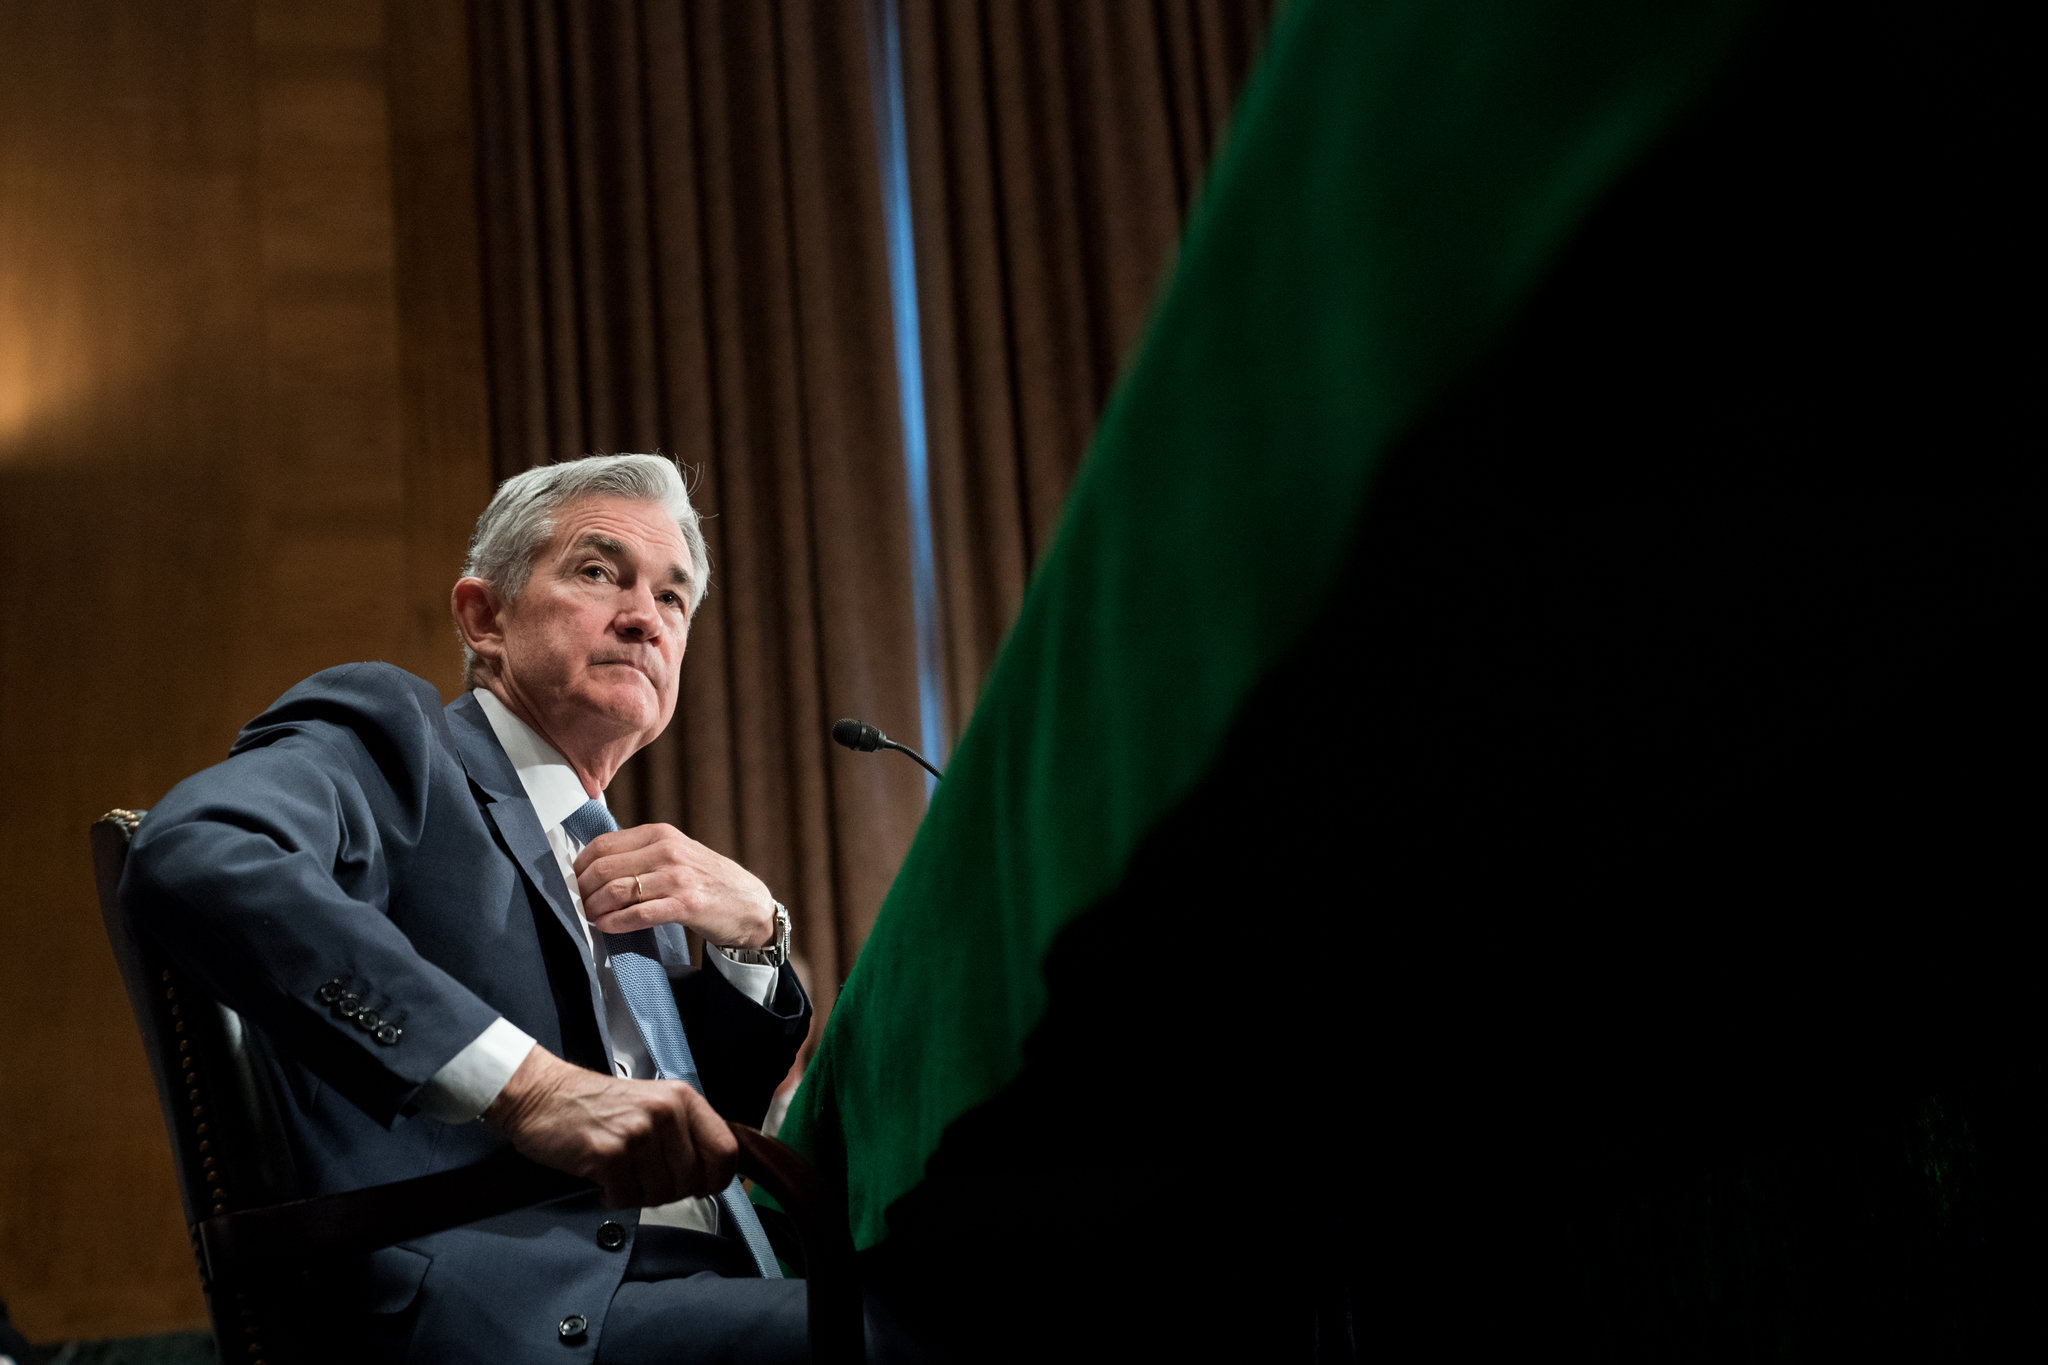 Fed Holds Rates Steady and Stays on Track for June Increase - The Federal Reserve held interest rates steady at the conclusion of its two-day policy meeting on Wednesday and acknowledged rising inflation, but it gave little indication that officials are worried about a sudden, rapid escalation in prices or an abrupt slowdown in economic growth that could alter its gradual pace of rate increases.